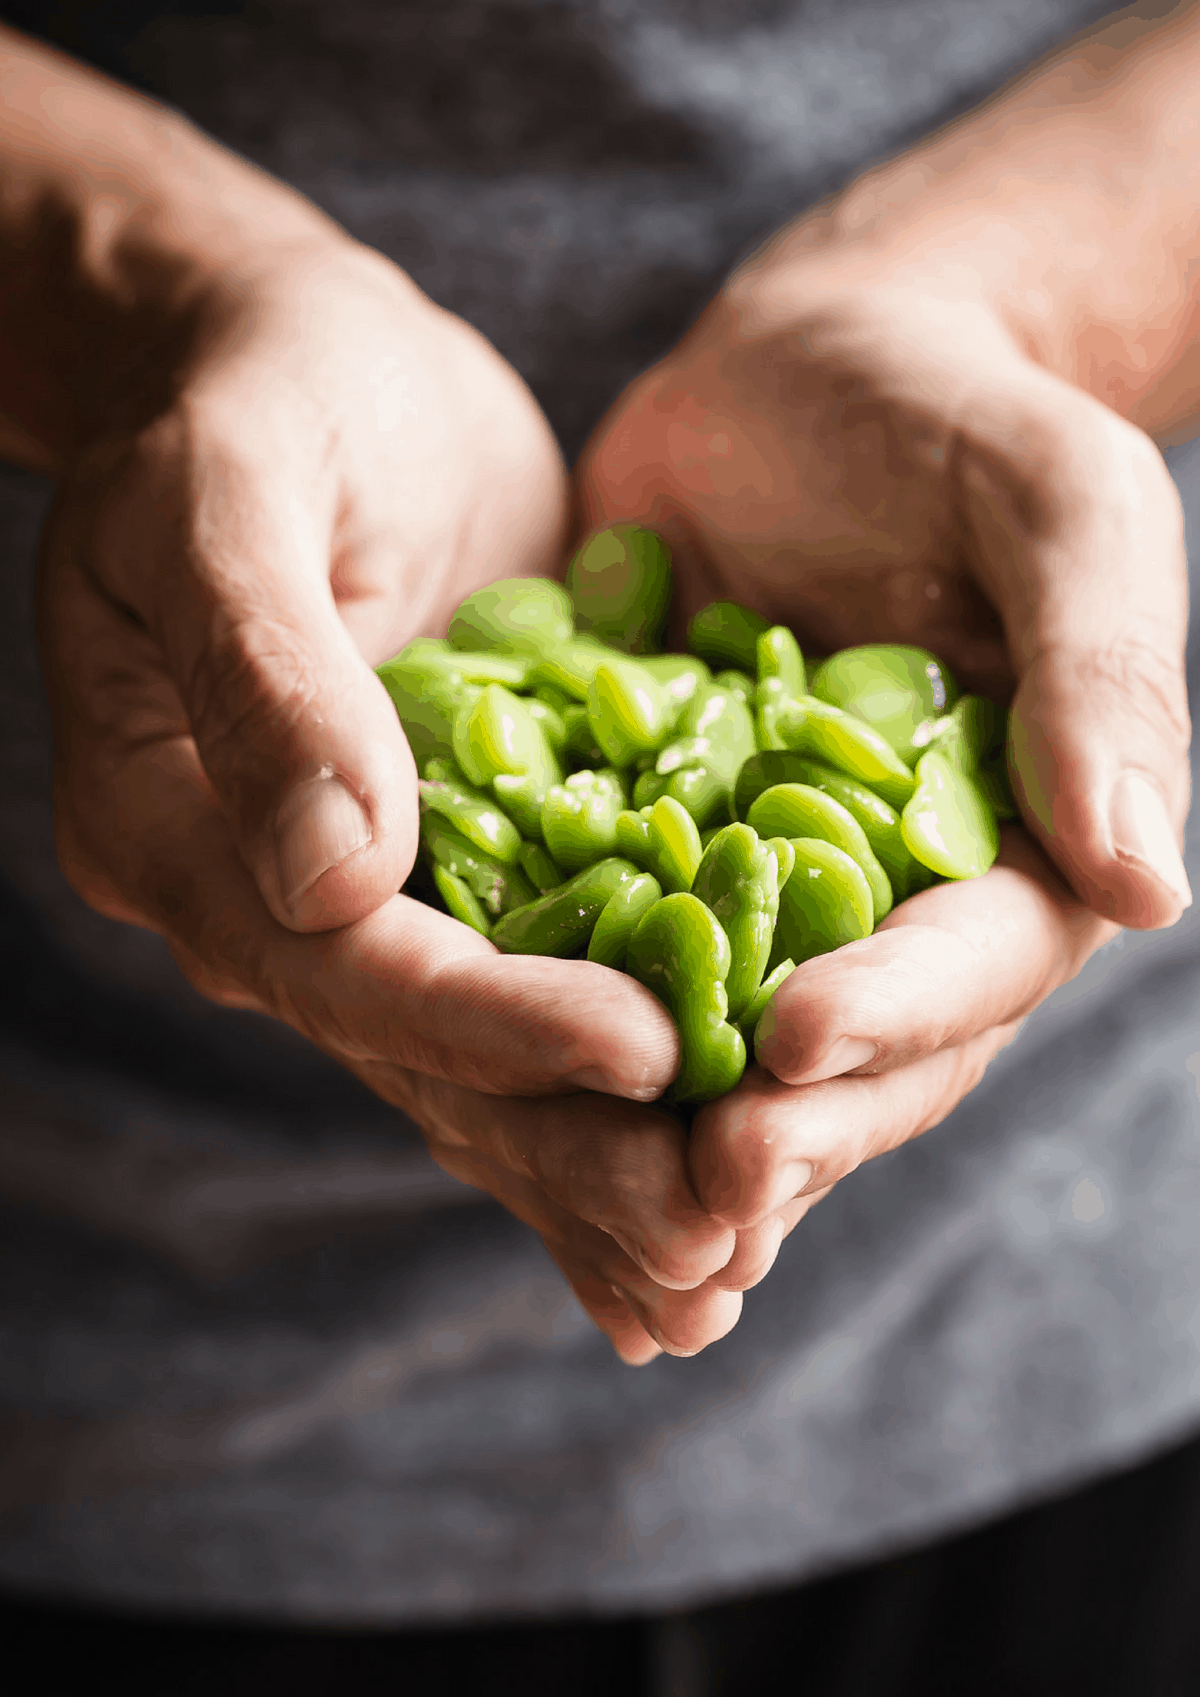 Edamame beans make a great snack to shut down hunger pangs!